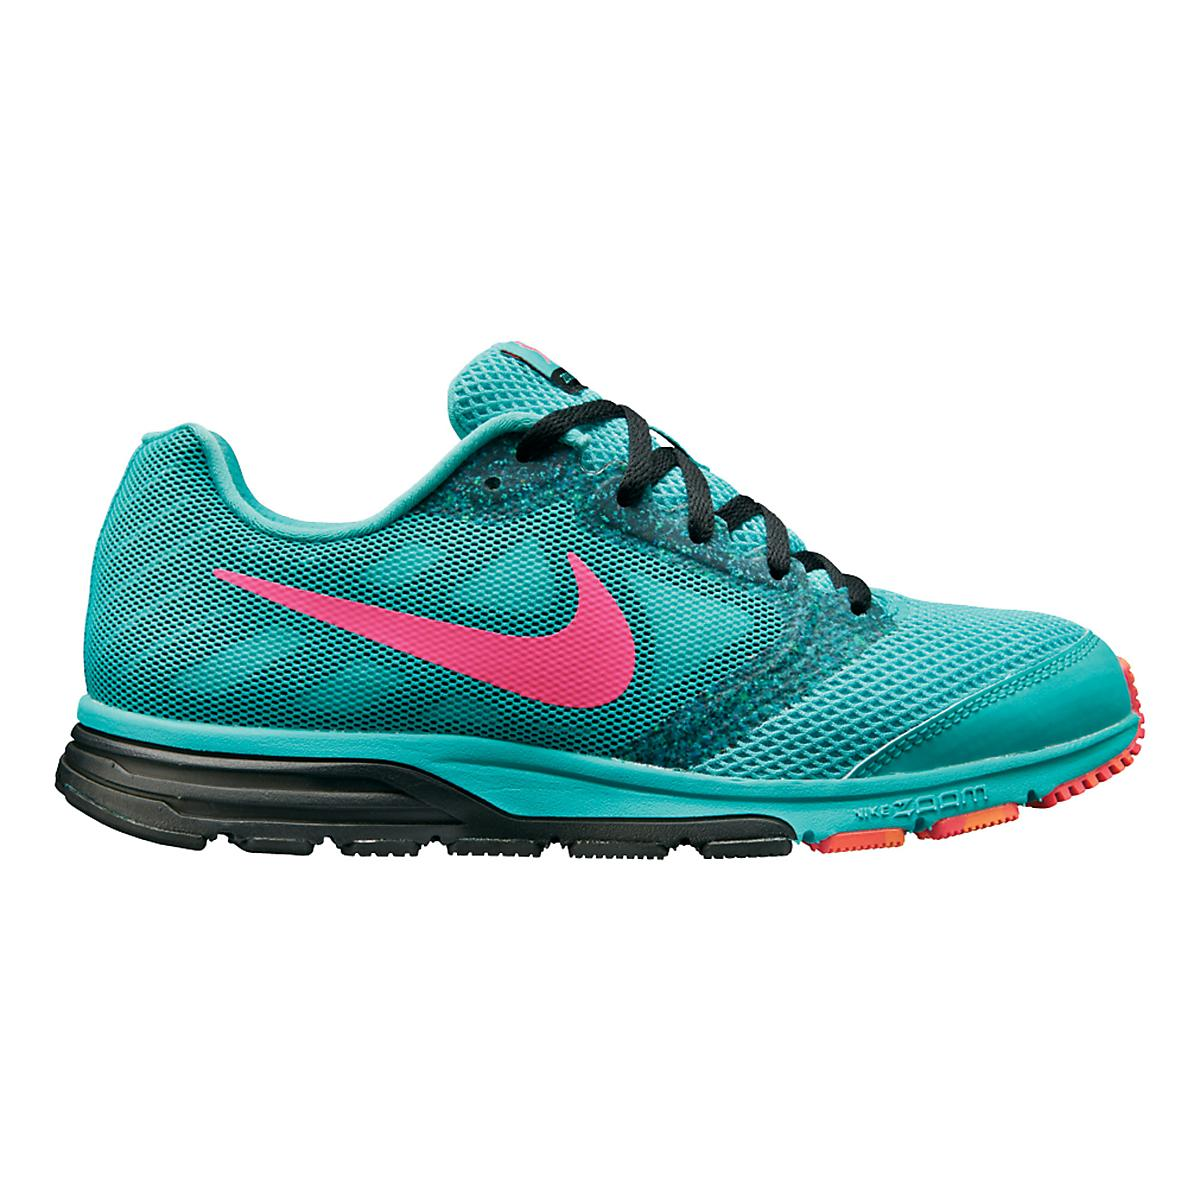 ebfb2b99449e3 Womens Nike Zoom Fly Running Shoe at Road Runner Sports